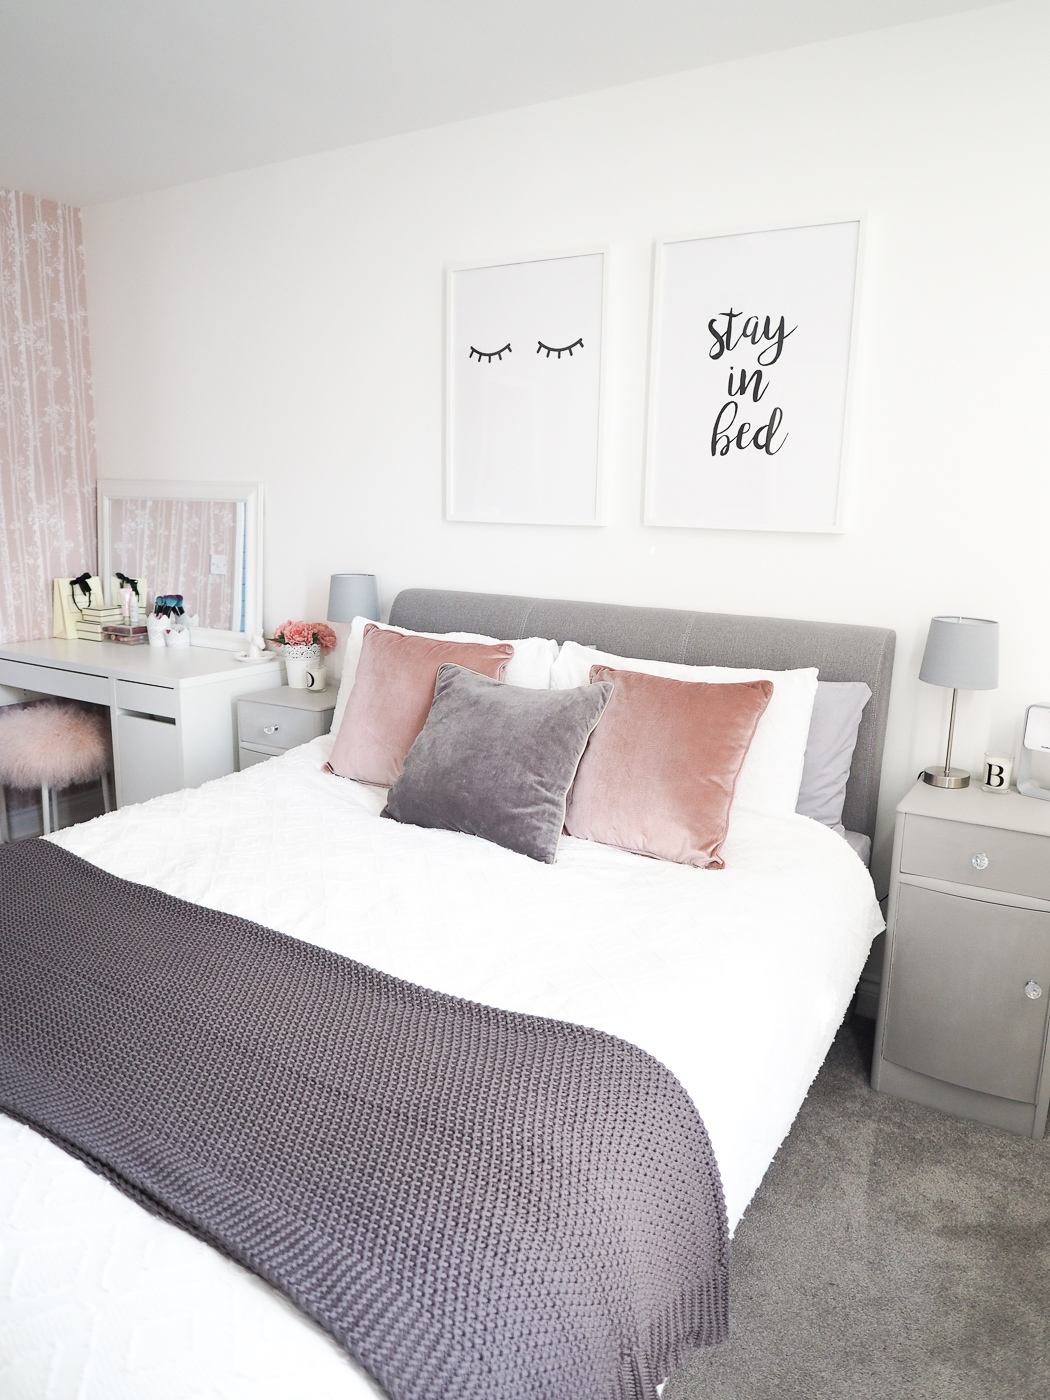 Bedroom Tour Pink And Grey Bedroom Decor Bang On Style